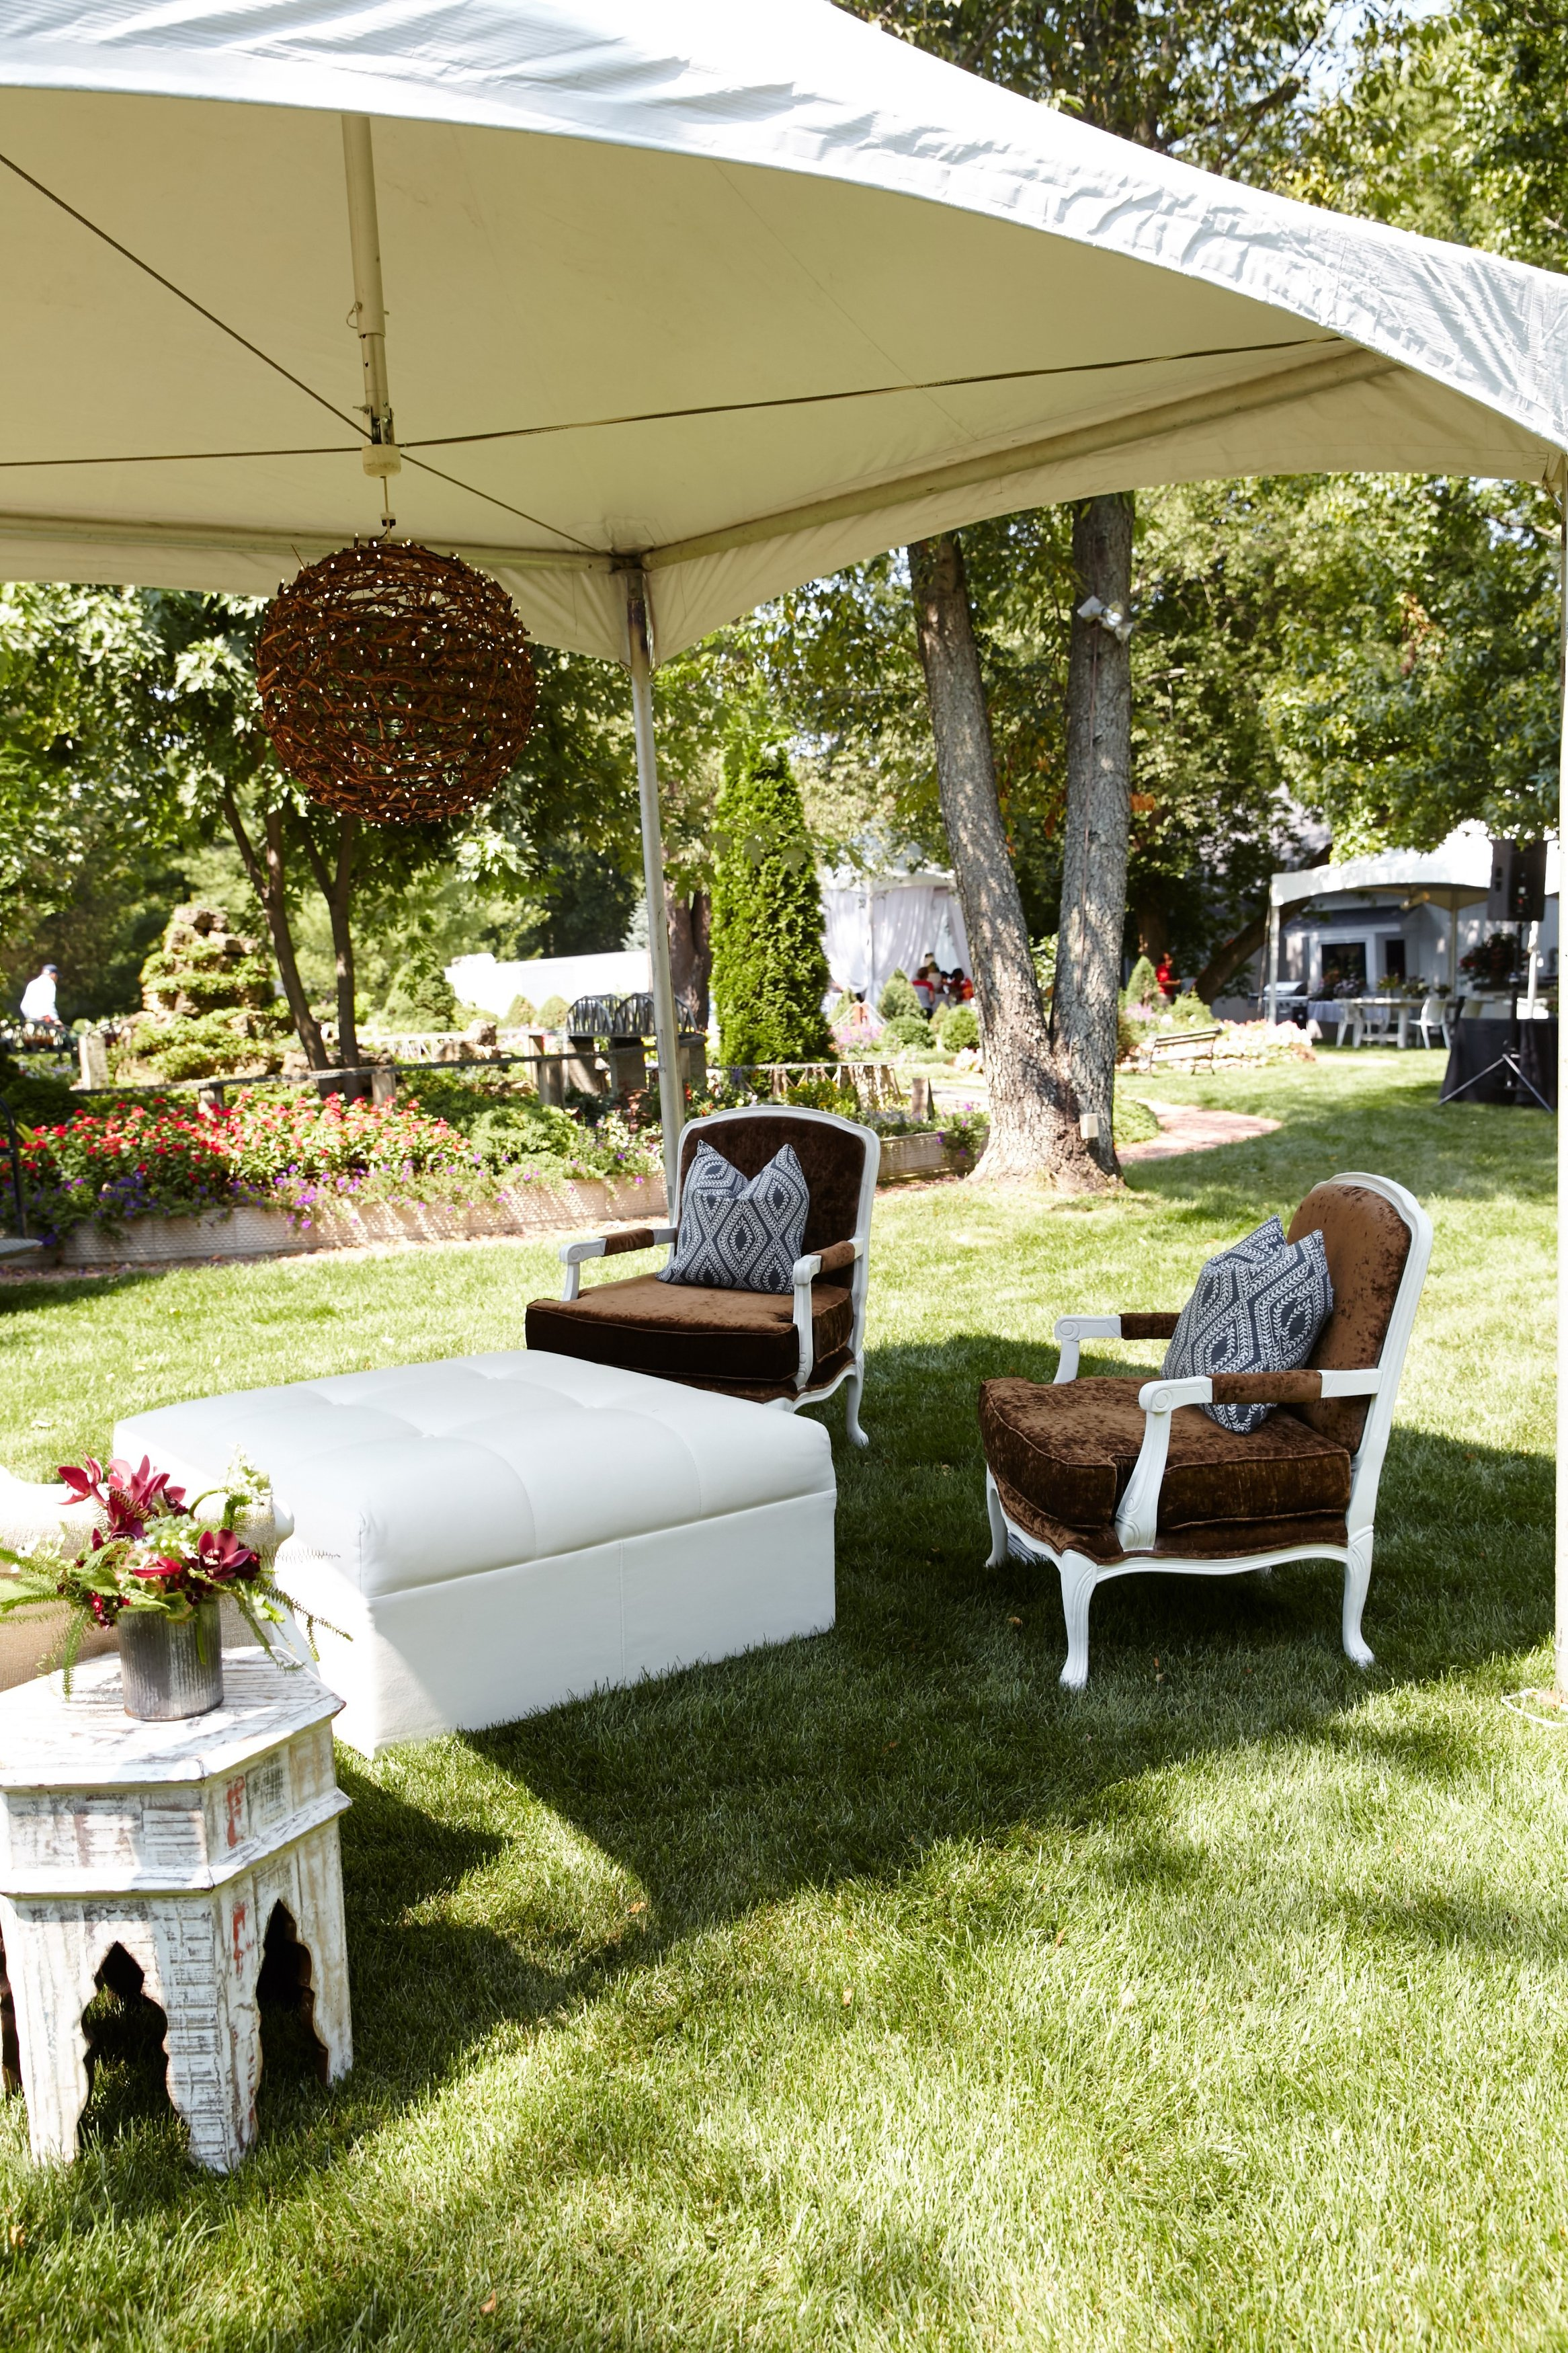 grapevine ball chandeliers and a lounge set for a rustic chic tent